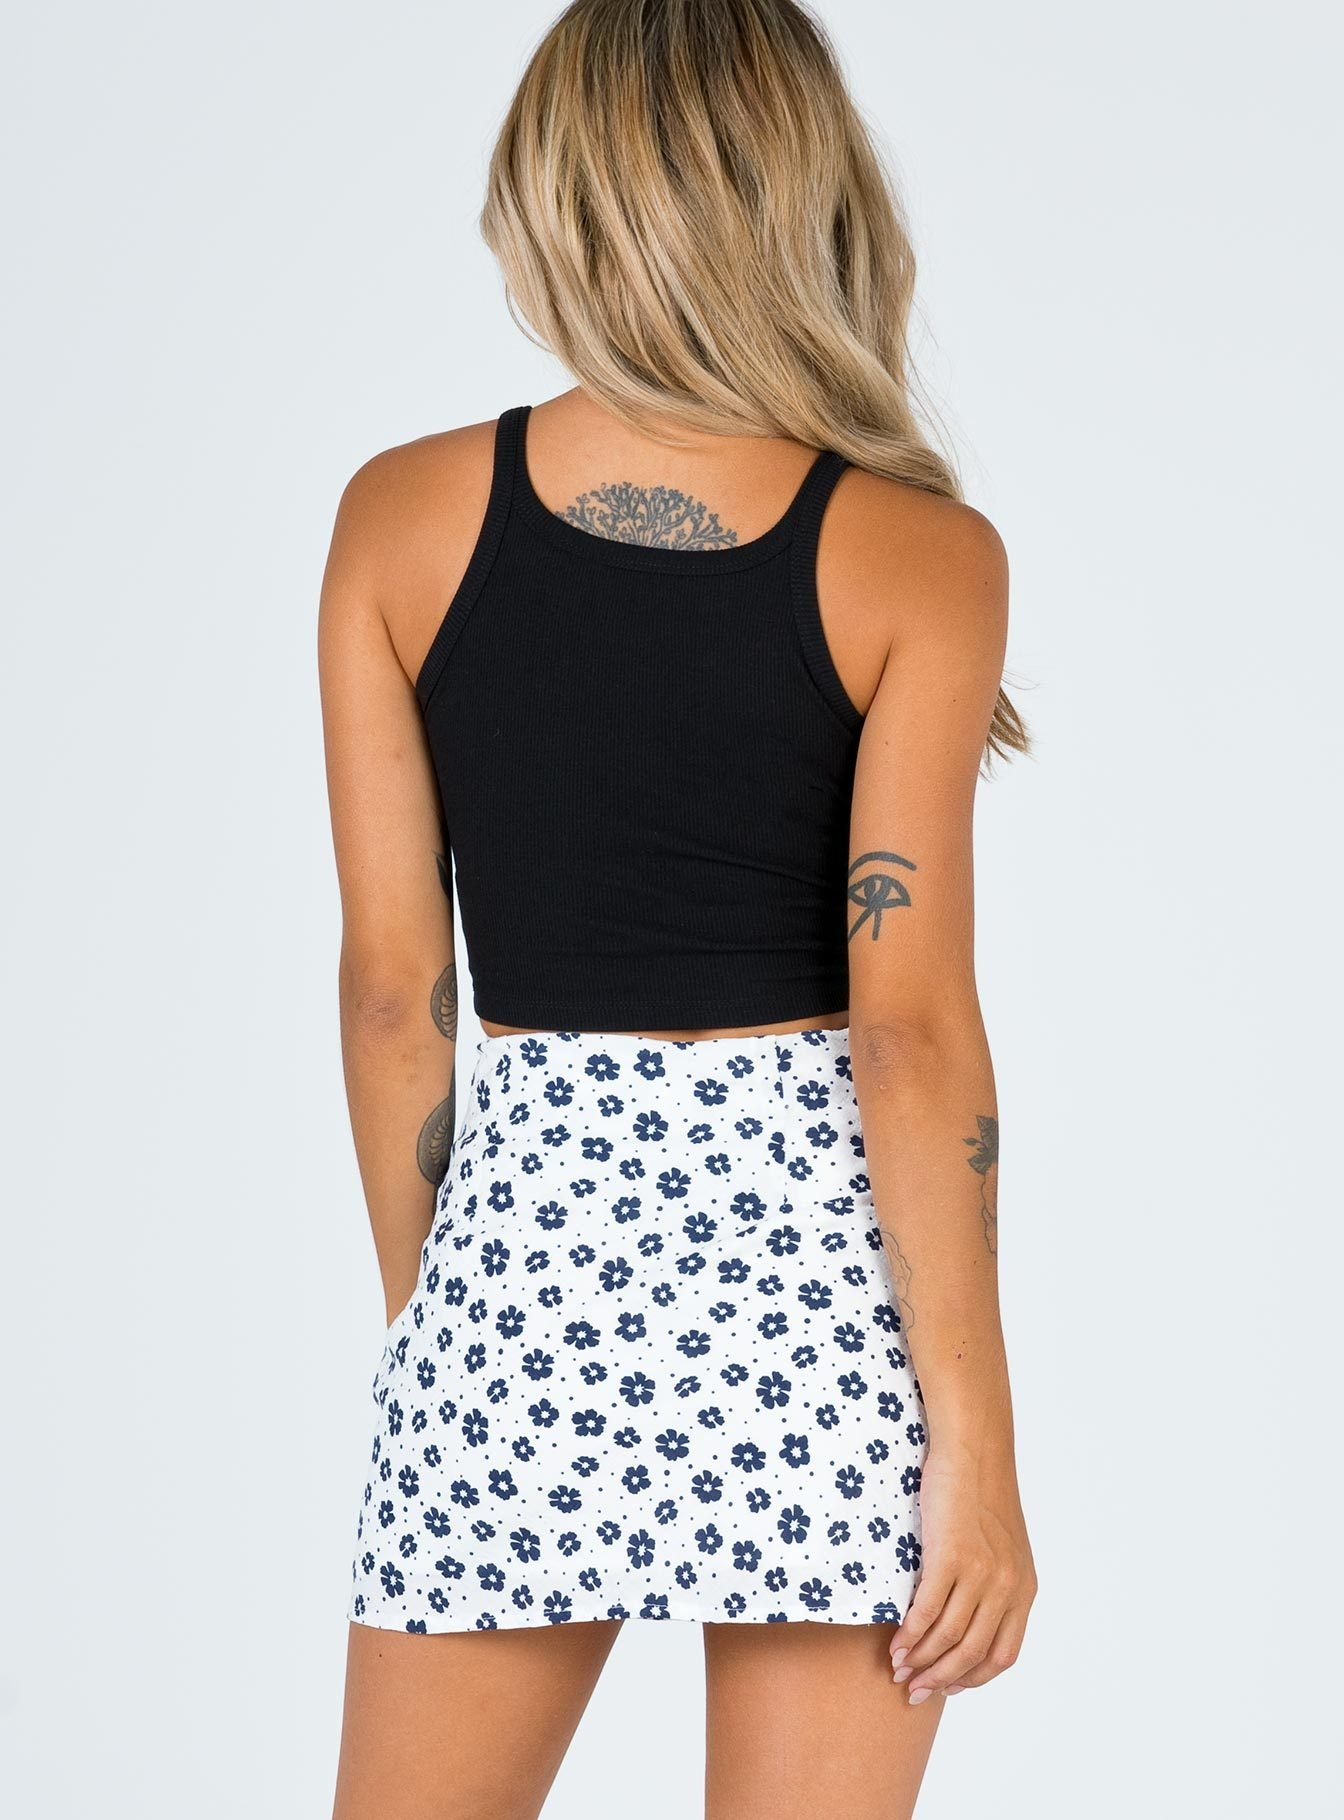 Maisy Hill Mini Skirt White